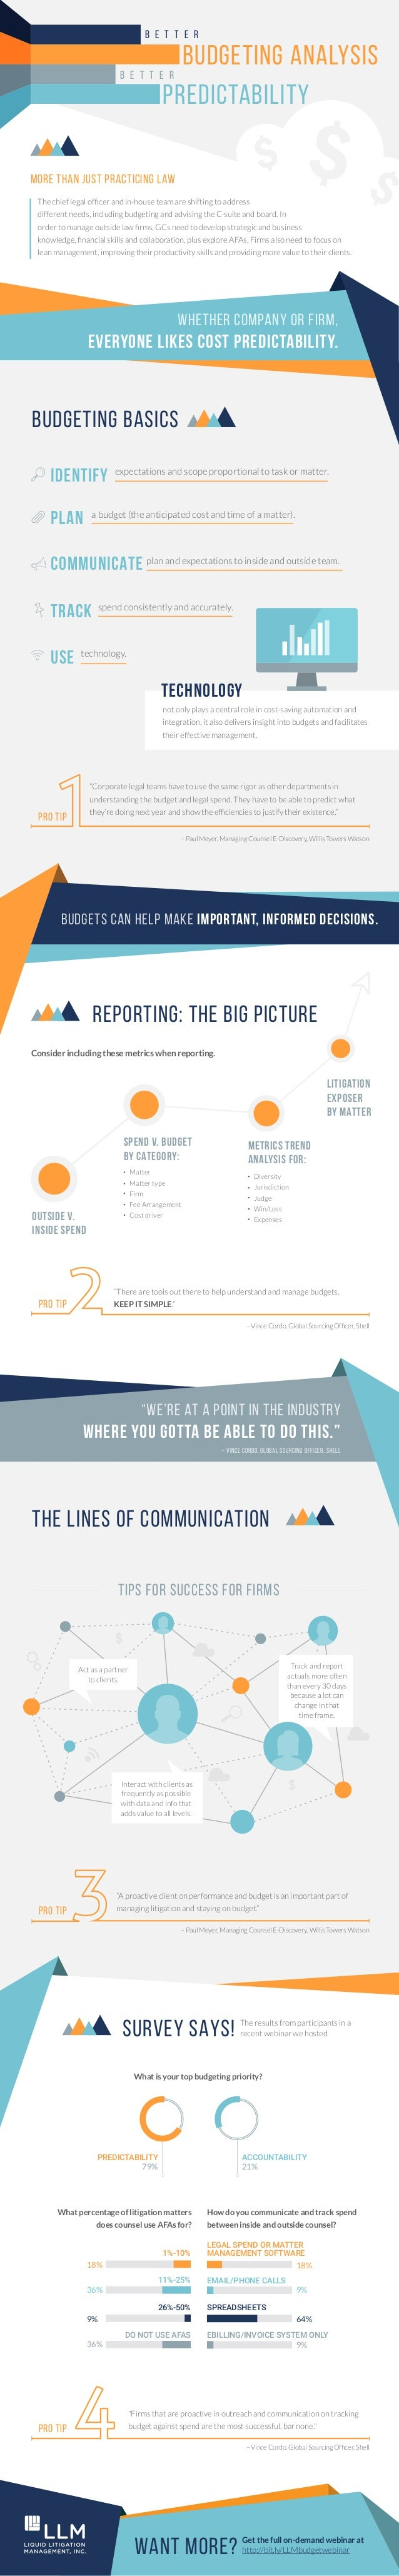 B E T T E R B E T T E R BUDGETING ANALYSIS MORE THAN JUST PRACTICING LAW BUDGETING BASICS PREDICTABILITY not only plays a ...